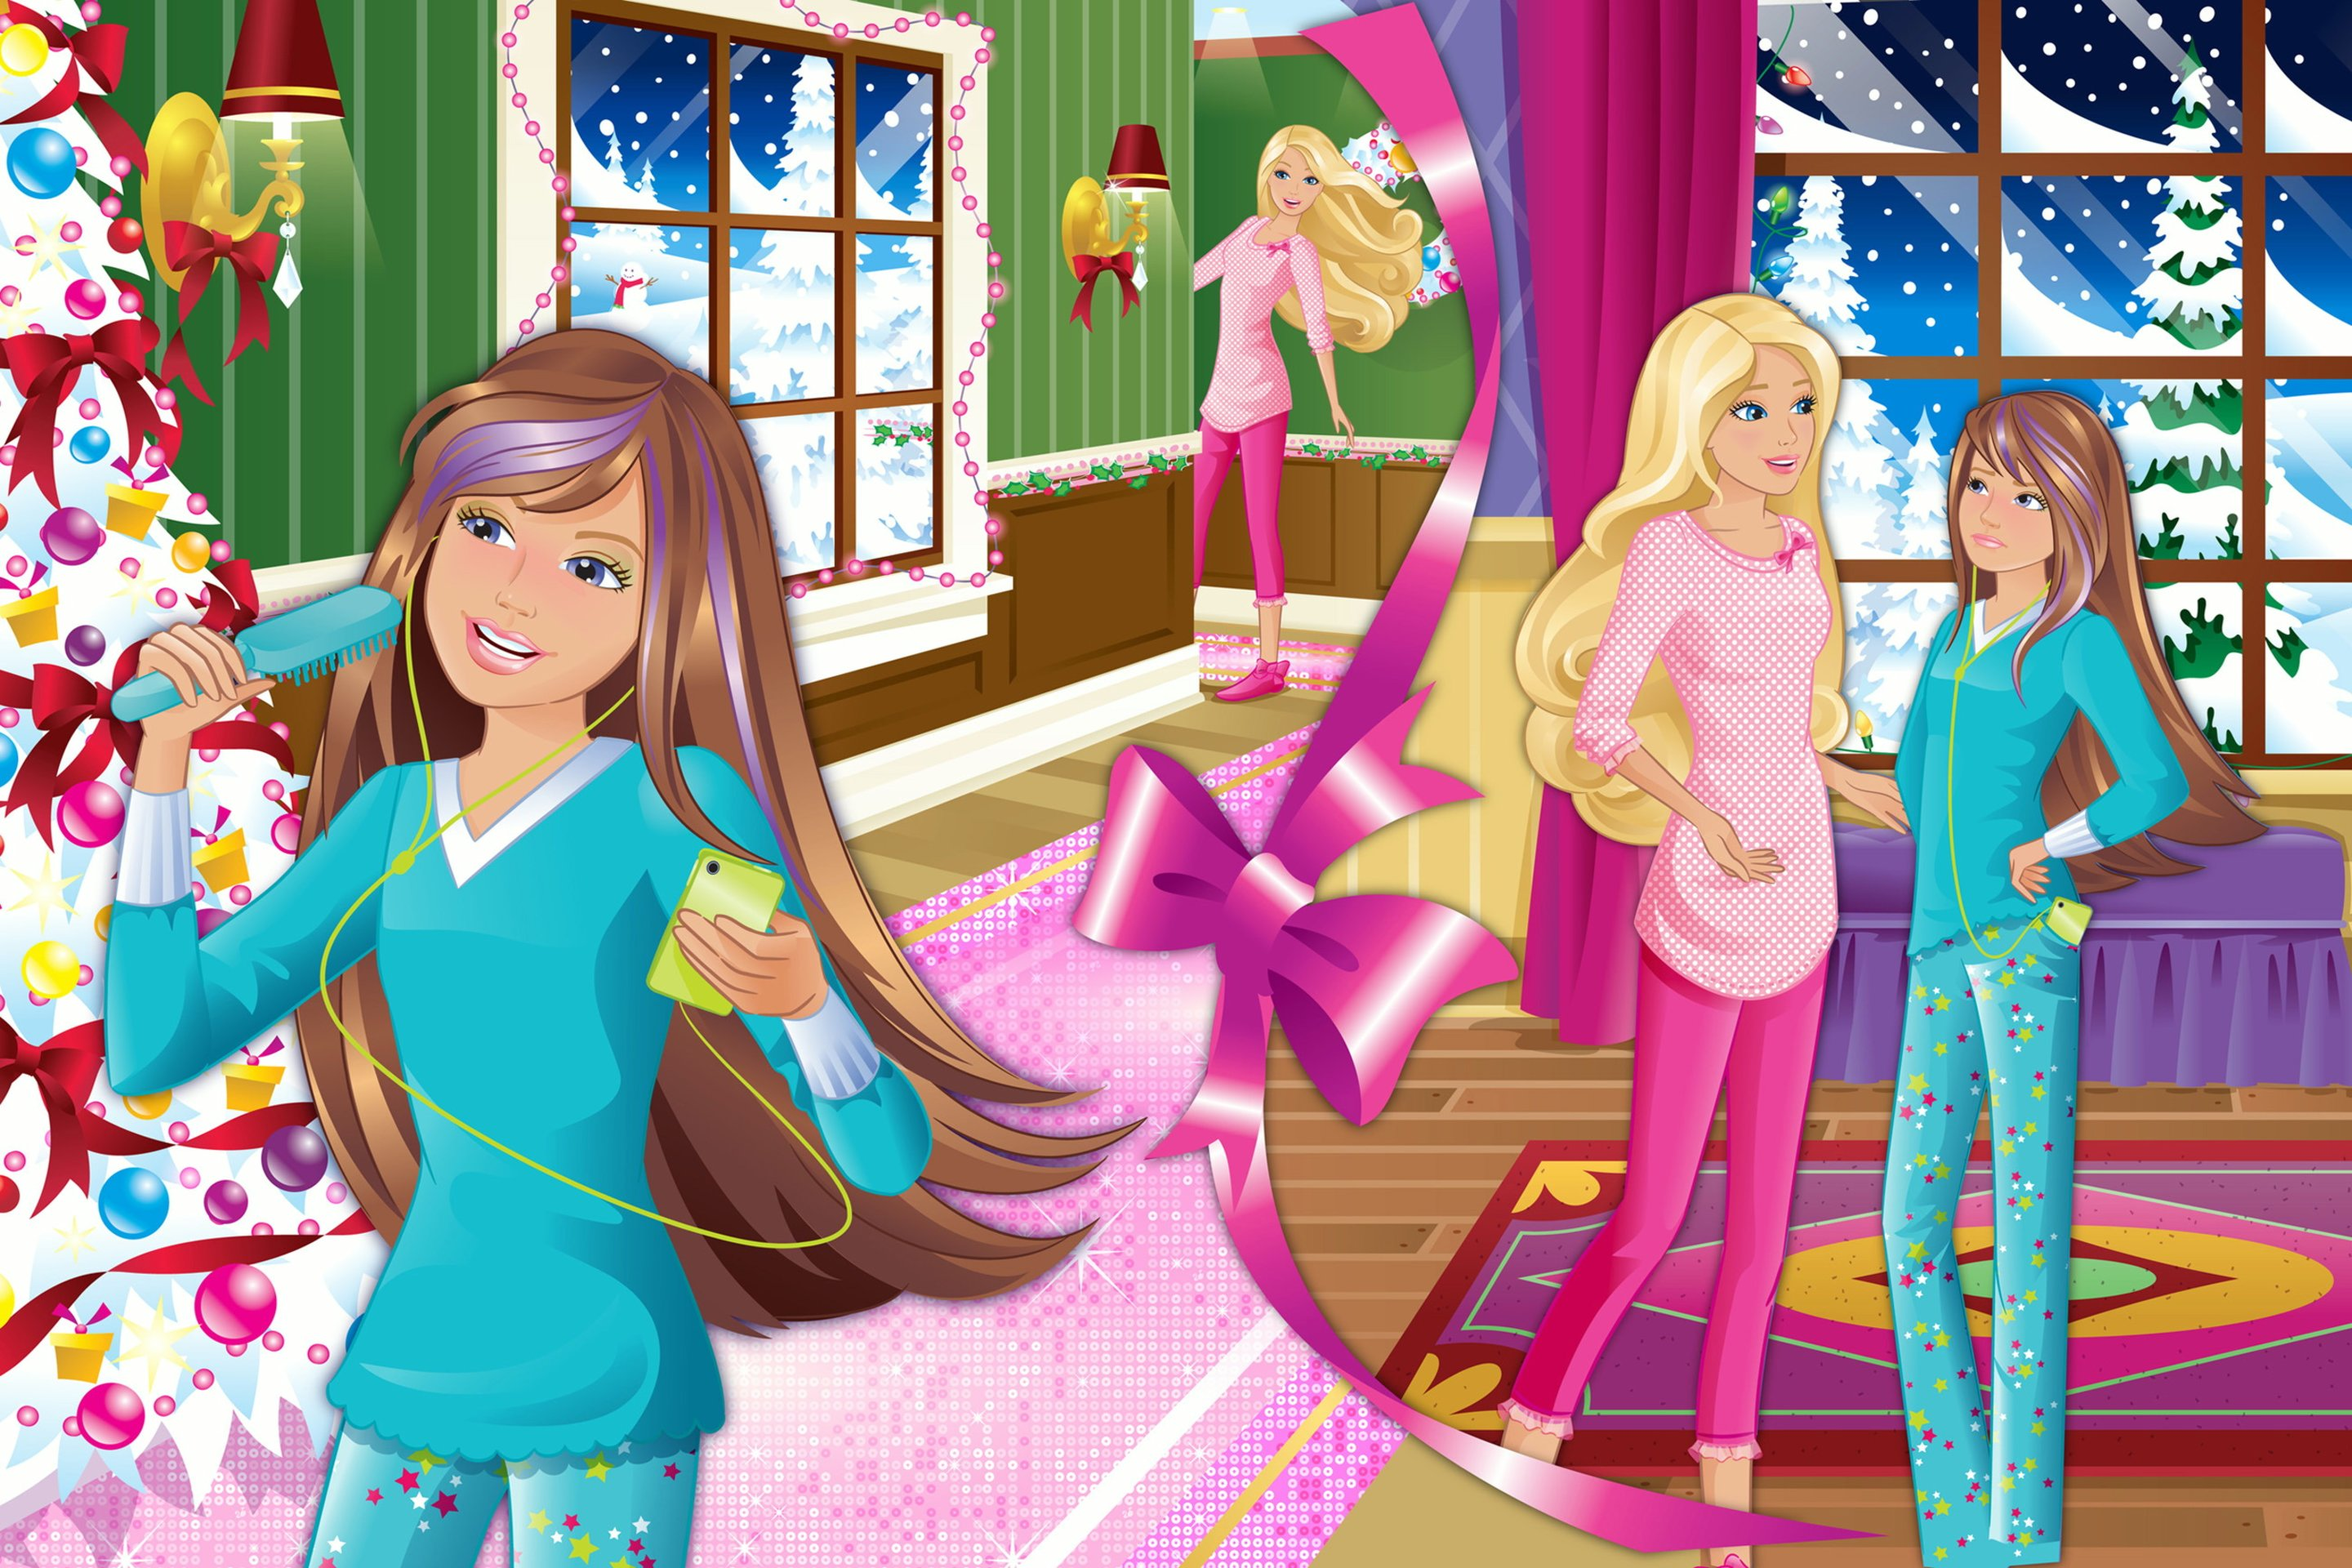 barbie zauberhafte weihnachten film 2011 trailer. Black Bedroom Furniture Sets. Home Design Ideas